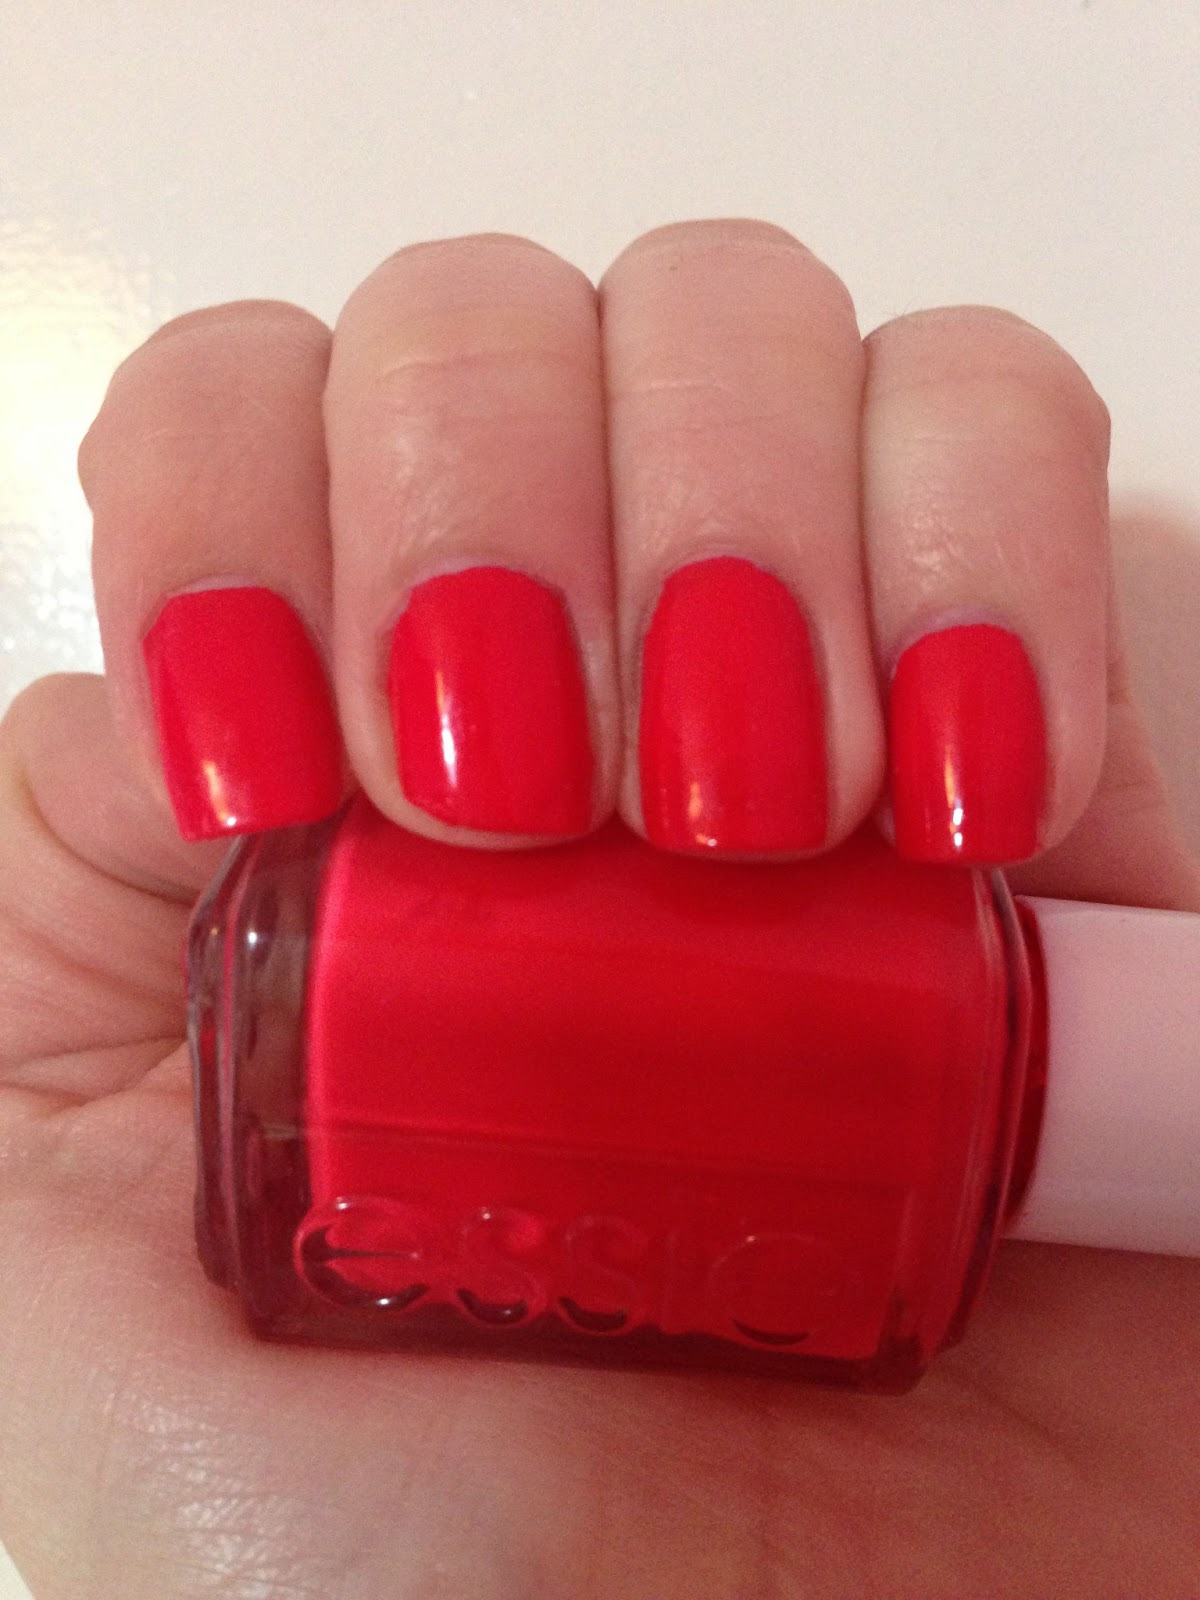 NOTD: Essie Snap Happy Nail Polish: Review and Swatches   RosyChicc